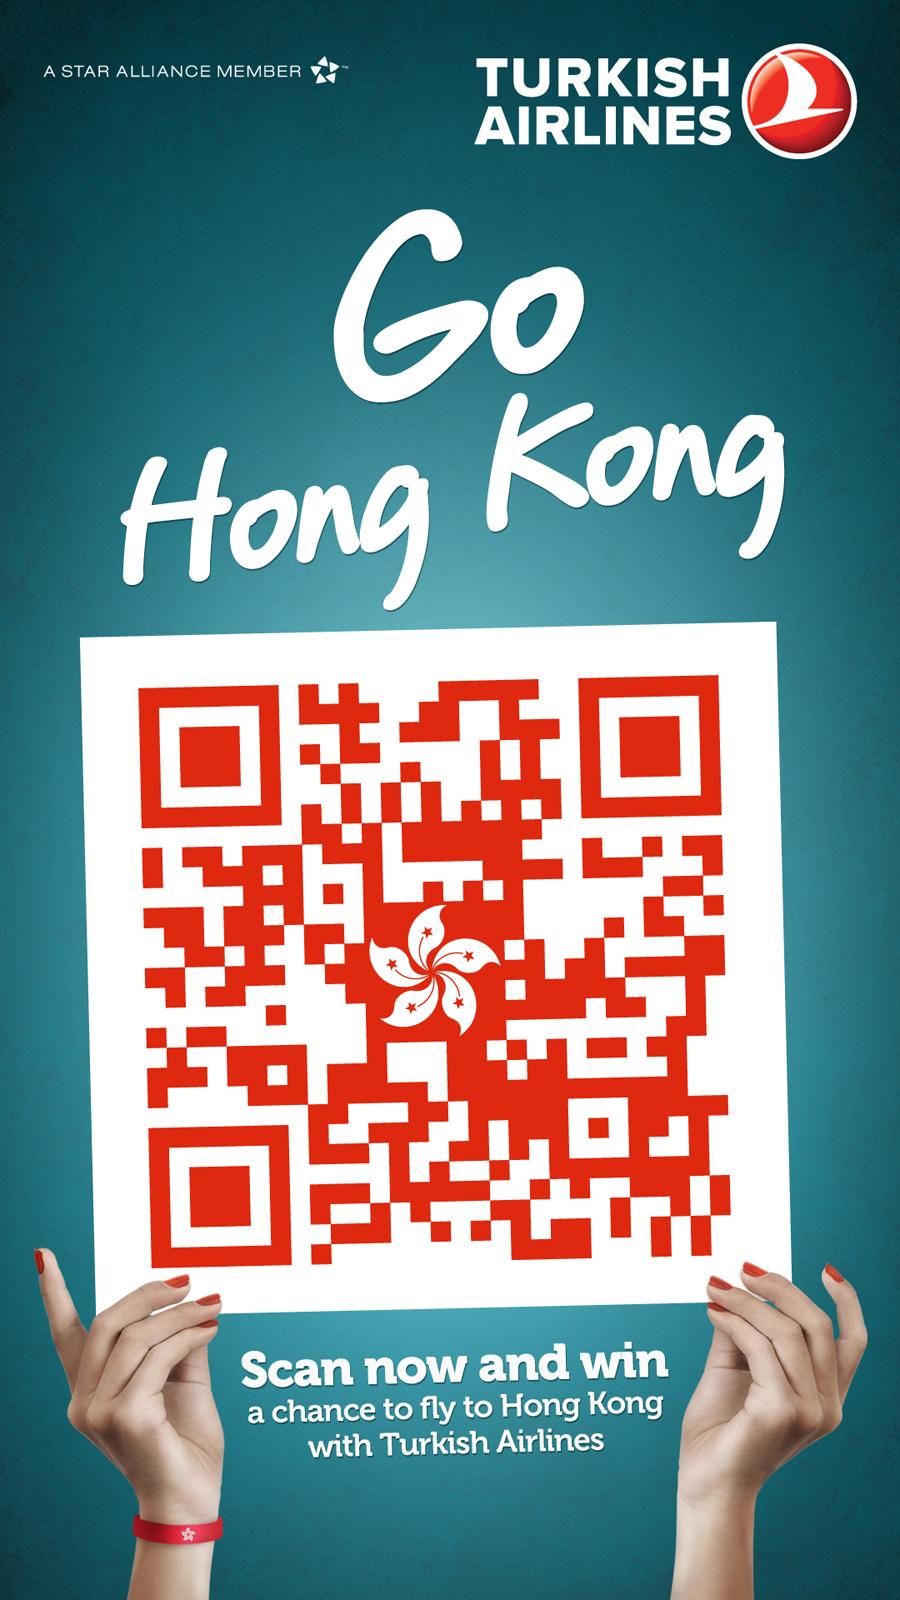 Turkish Airlines Outdoor Ad -  QR Flags, Hong Kong